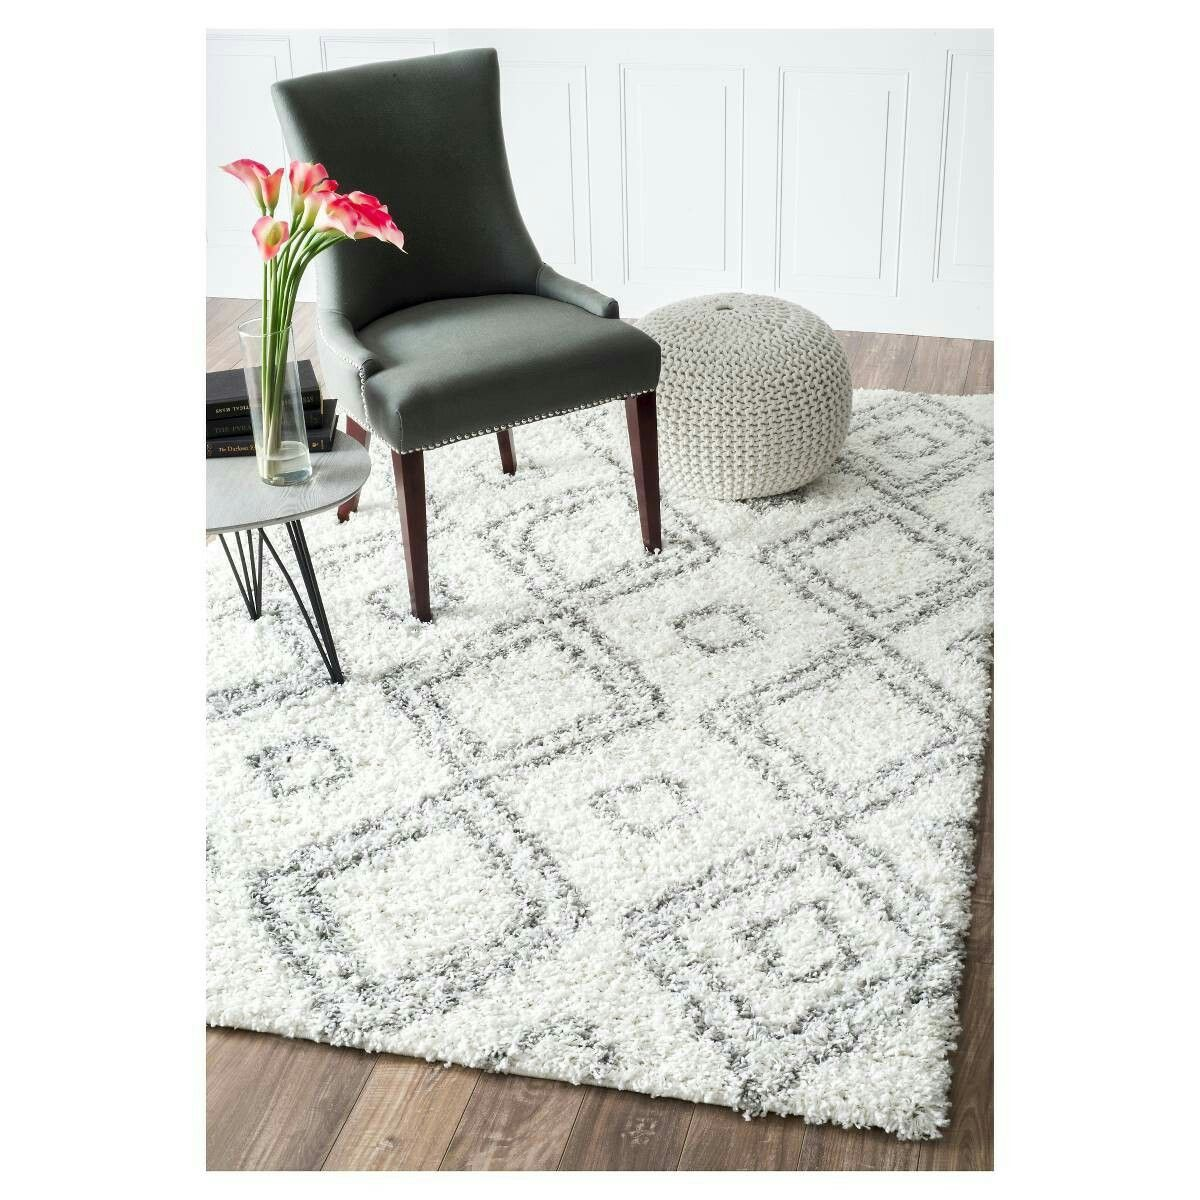 Pin By Ampha Kitone On Home House Lax White Shag Area Rug Area Rugs Cheap Shag Area Rug